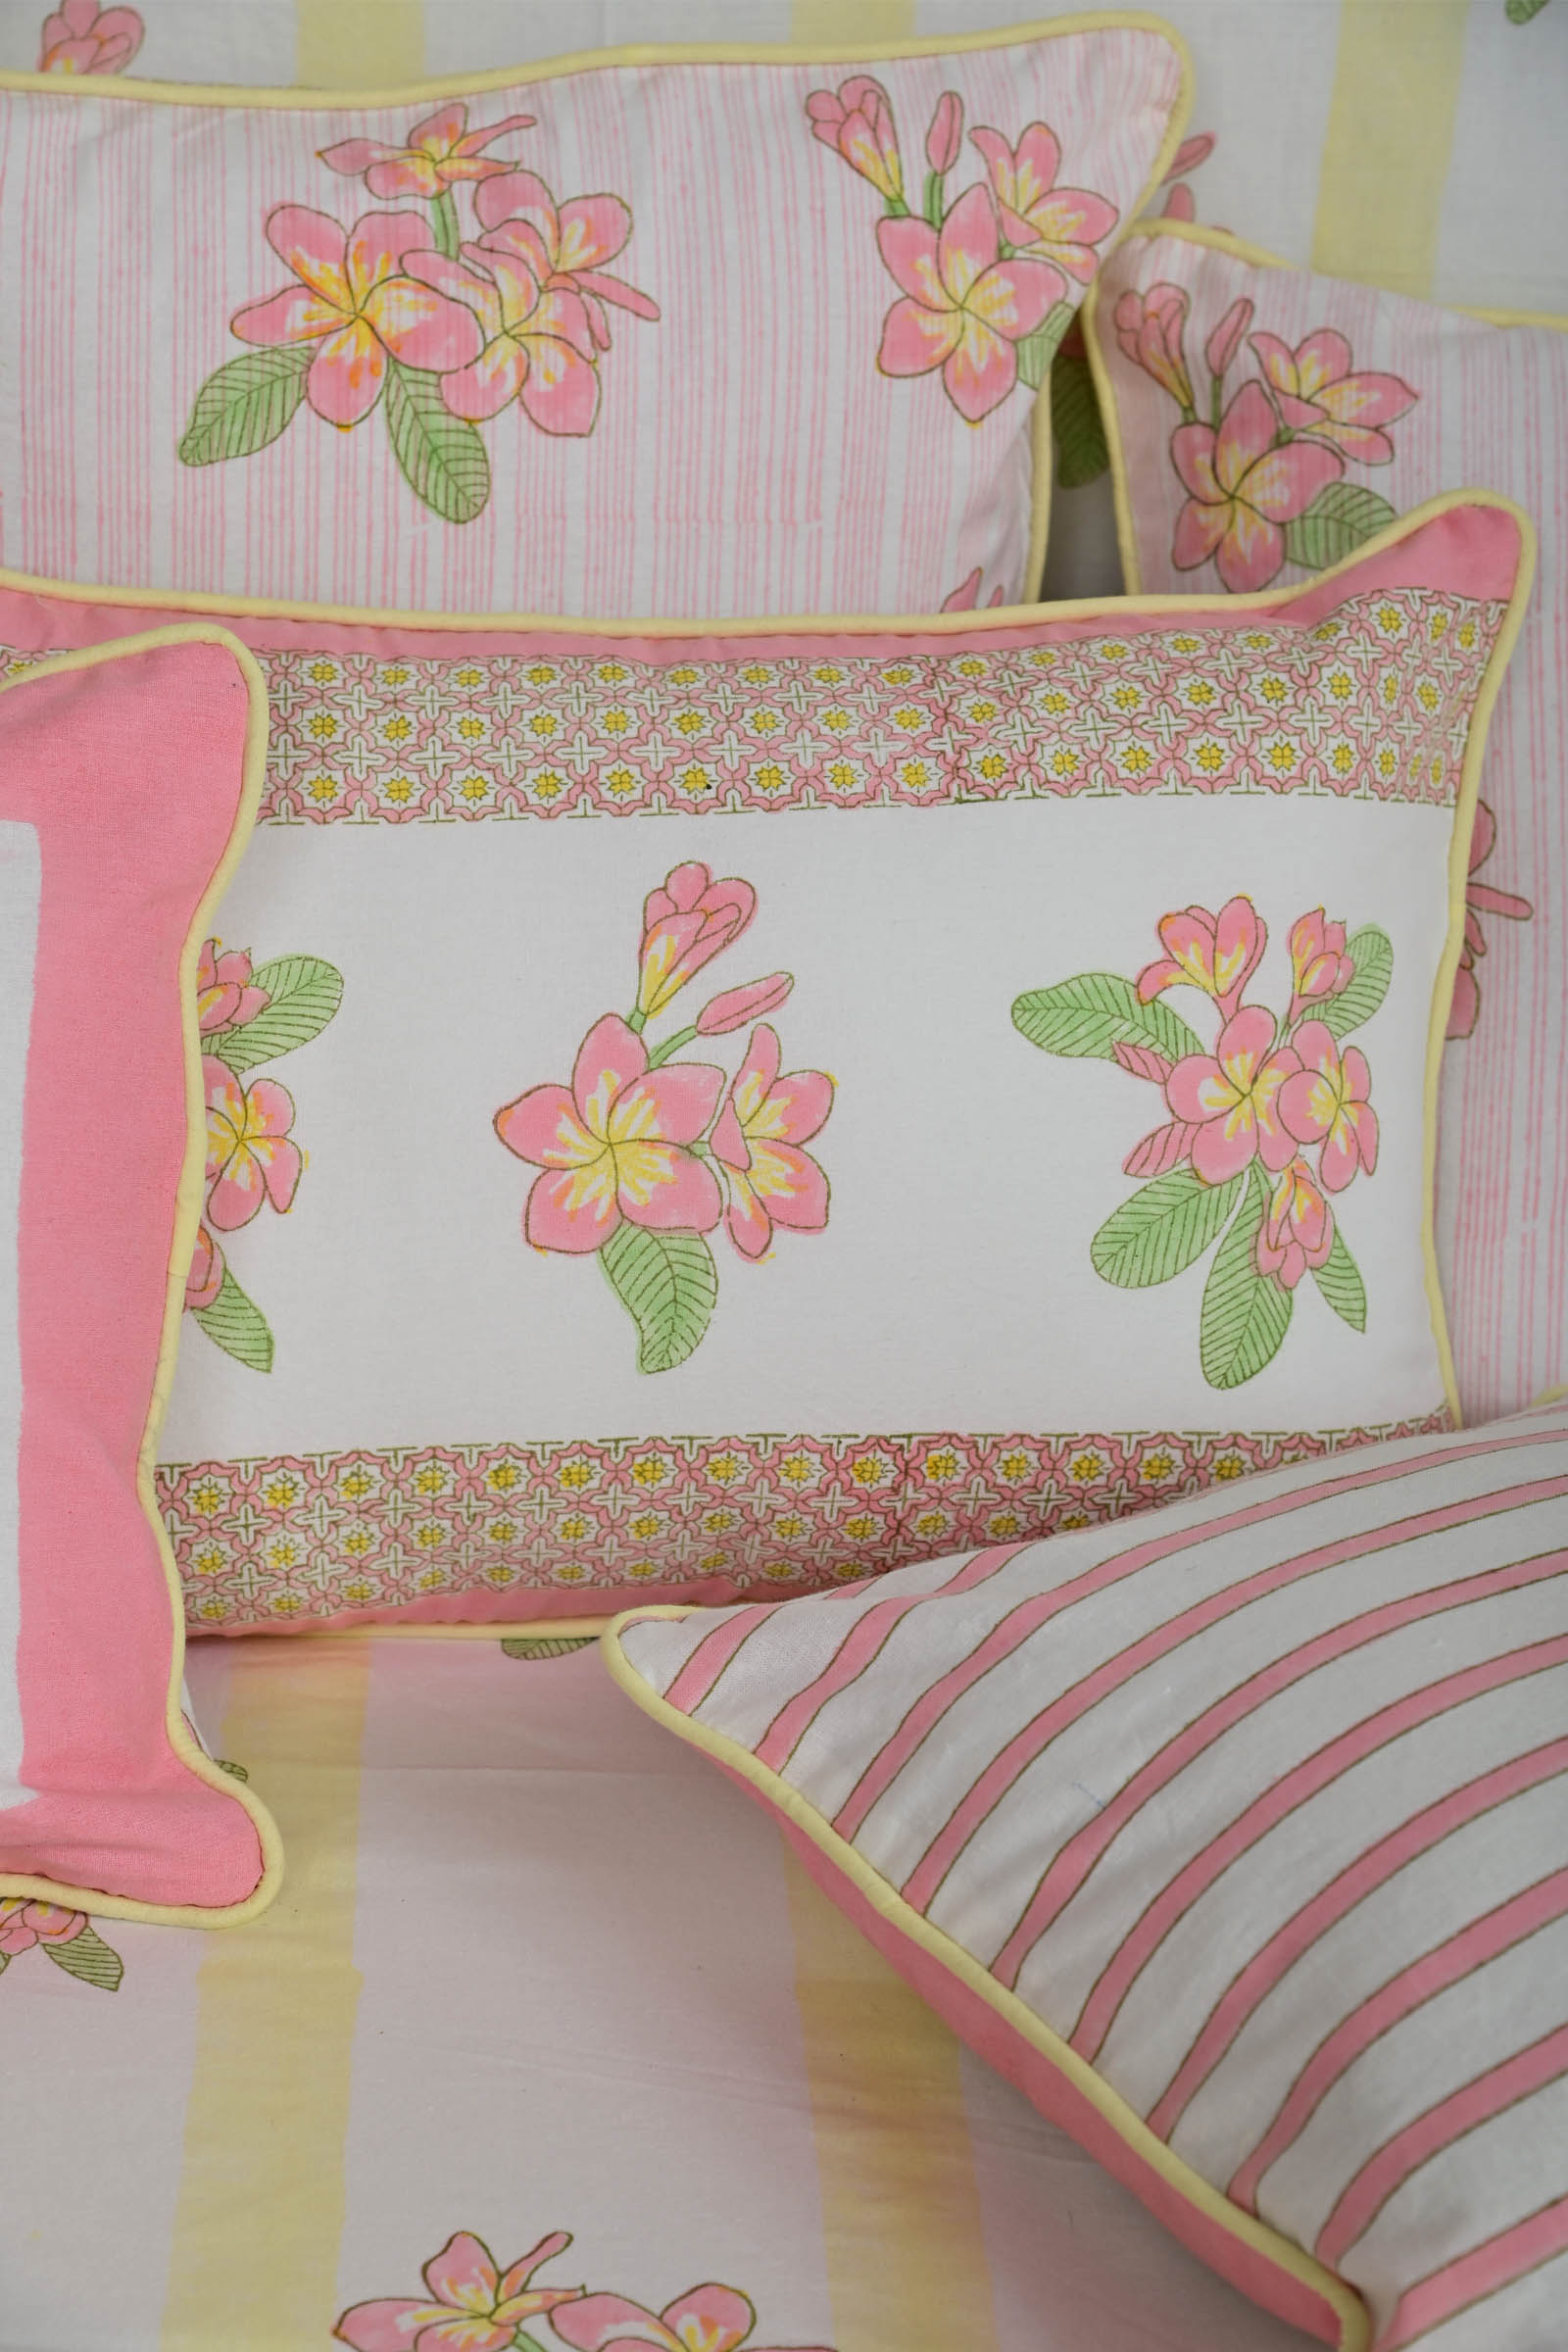 Frangipani 18*12 Cushion Cover